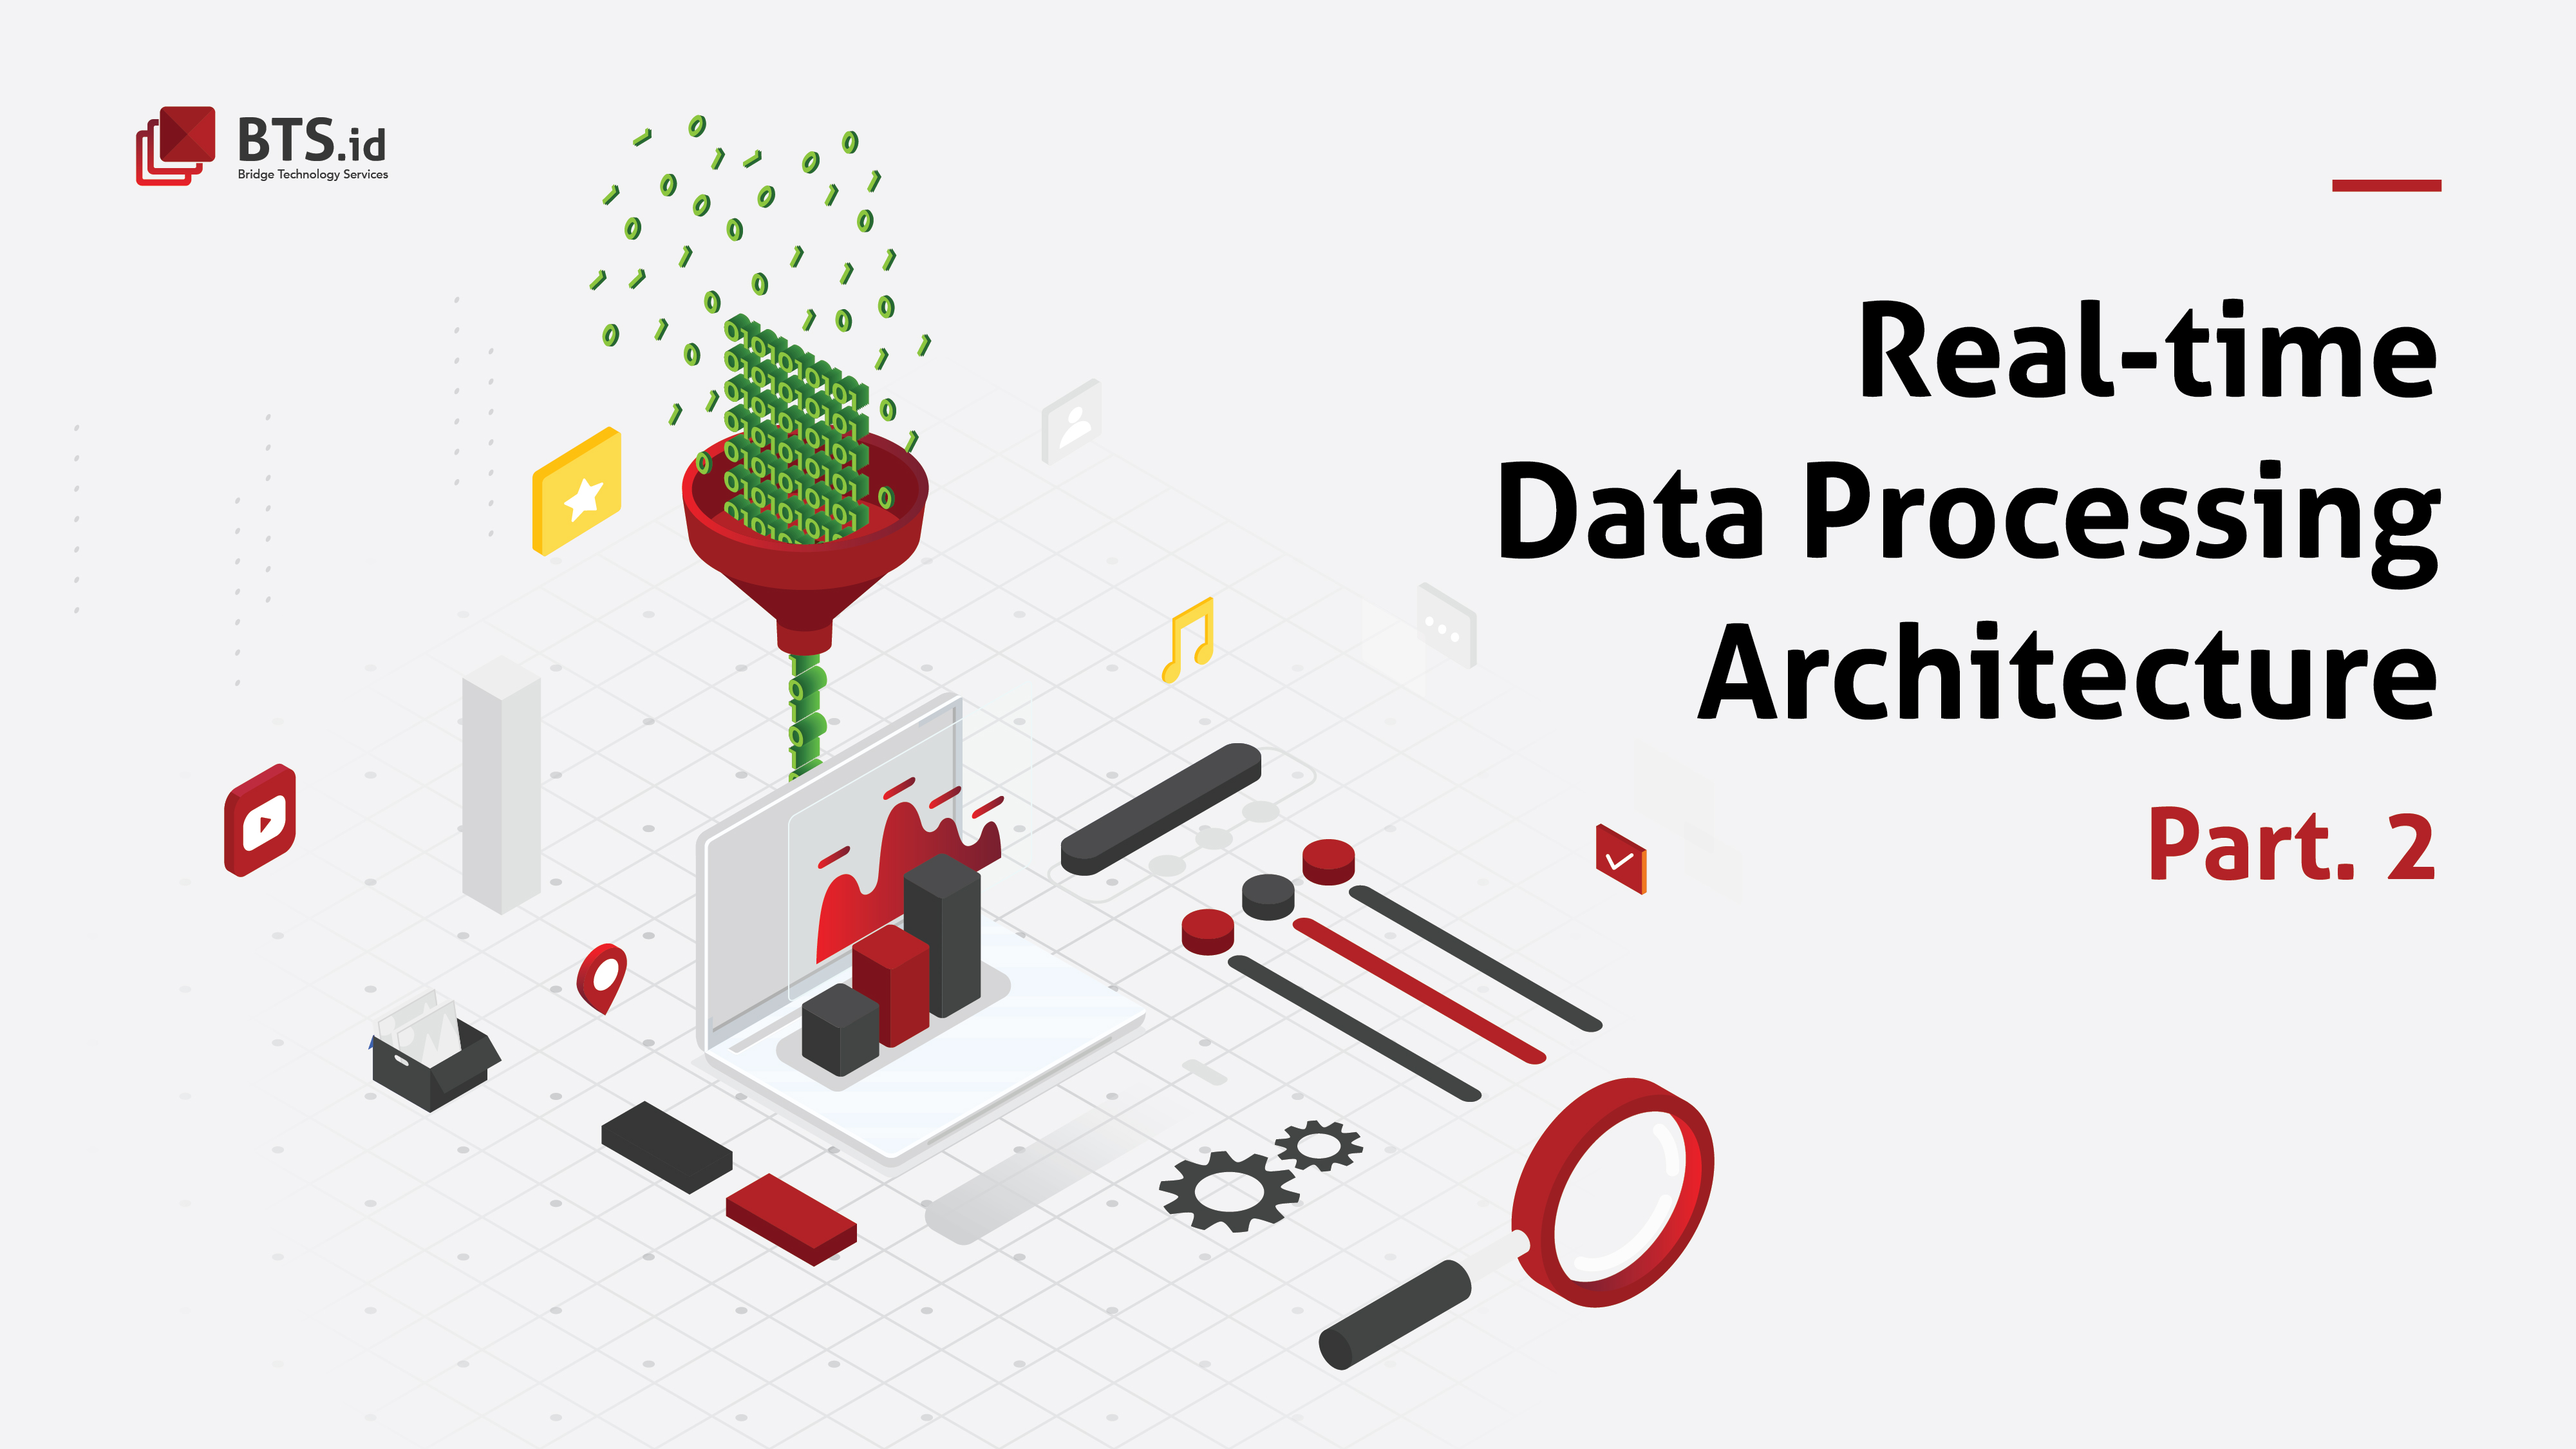 Real-Time Data Processing Architecture Part. 2 - BTS.id